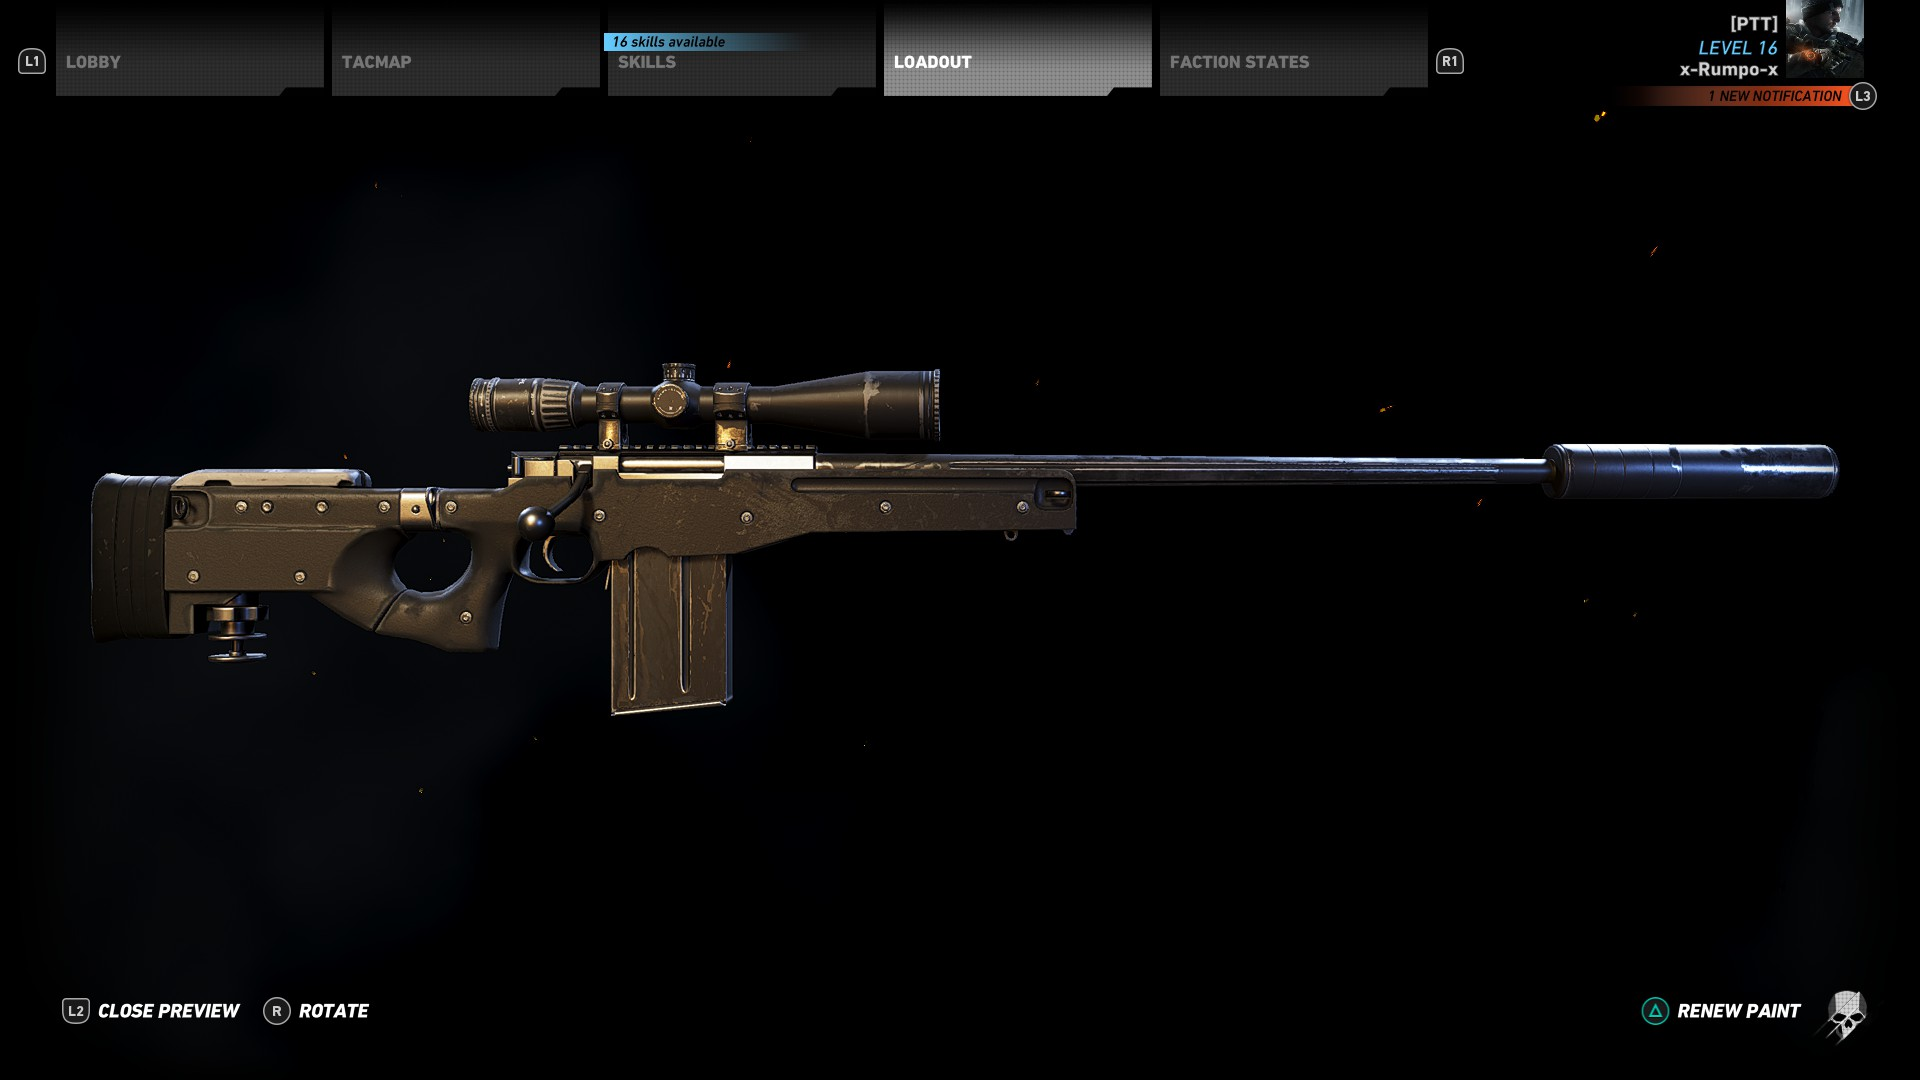 A closer look at the L115A3 Sniper Rifle in Ghost Recon Wildlands